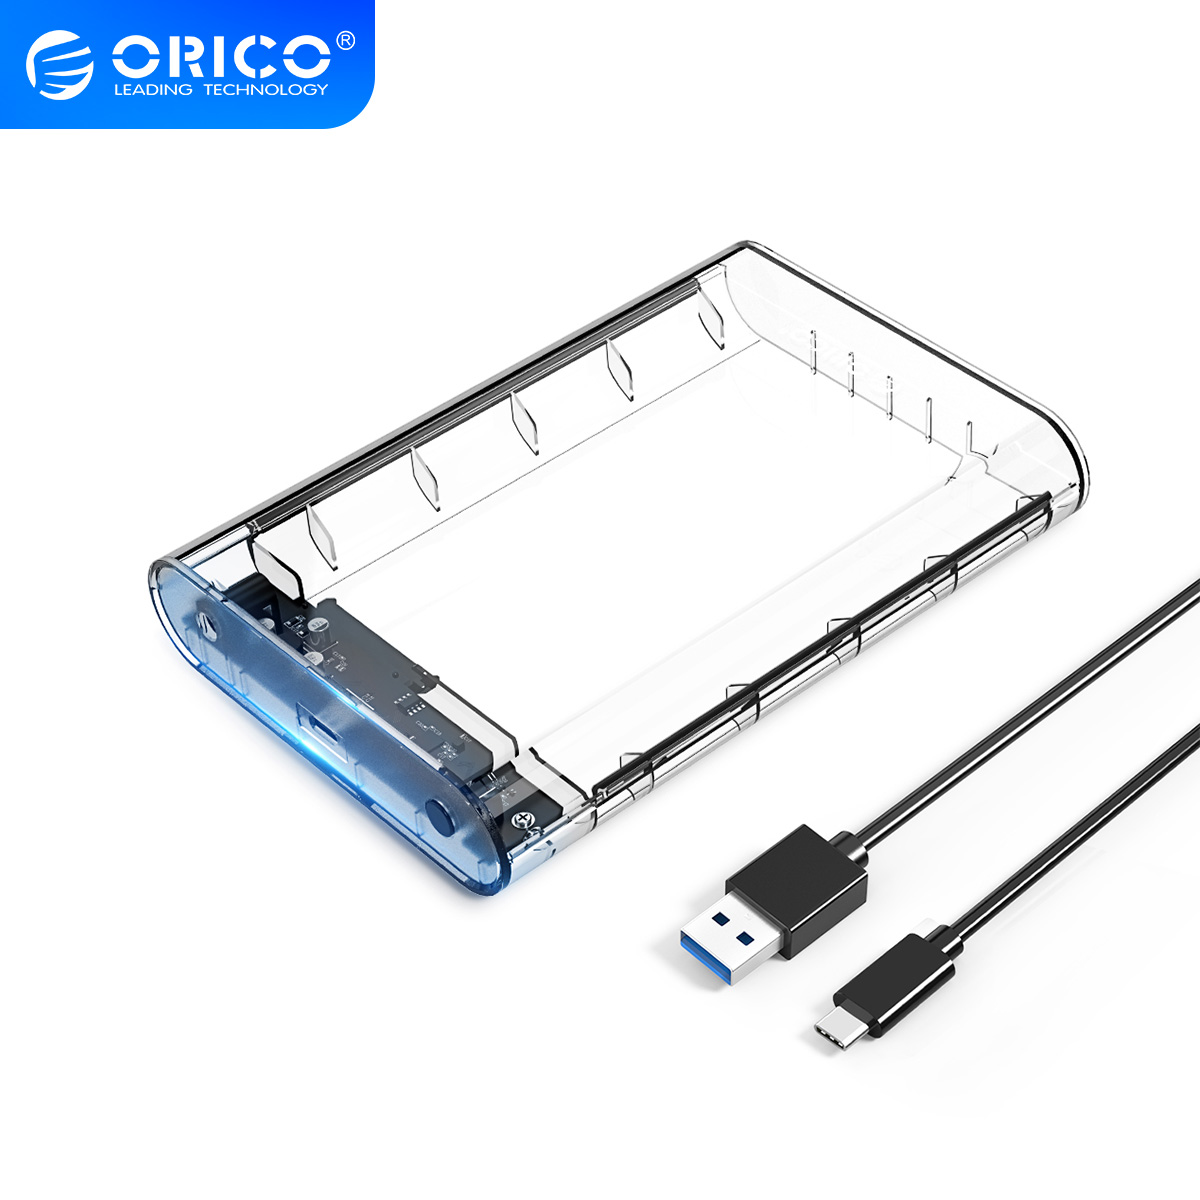 ORICO 3.5 Inch Type C Transparent HDD Case SATA to <font><b>USB</b></font> <font><b>3.1</b></font> <font><b>SSD</b></font> Adapter 12TB Hard Disk Drive <font><b>Box</b></font> External Storage HDD Enclosure image